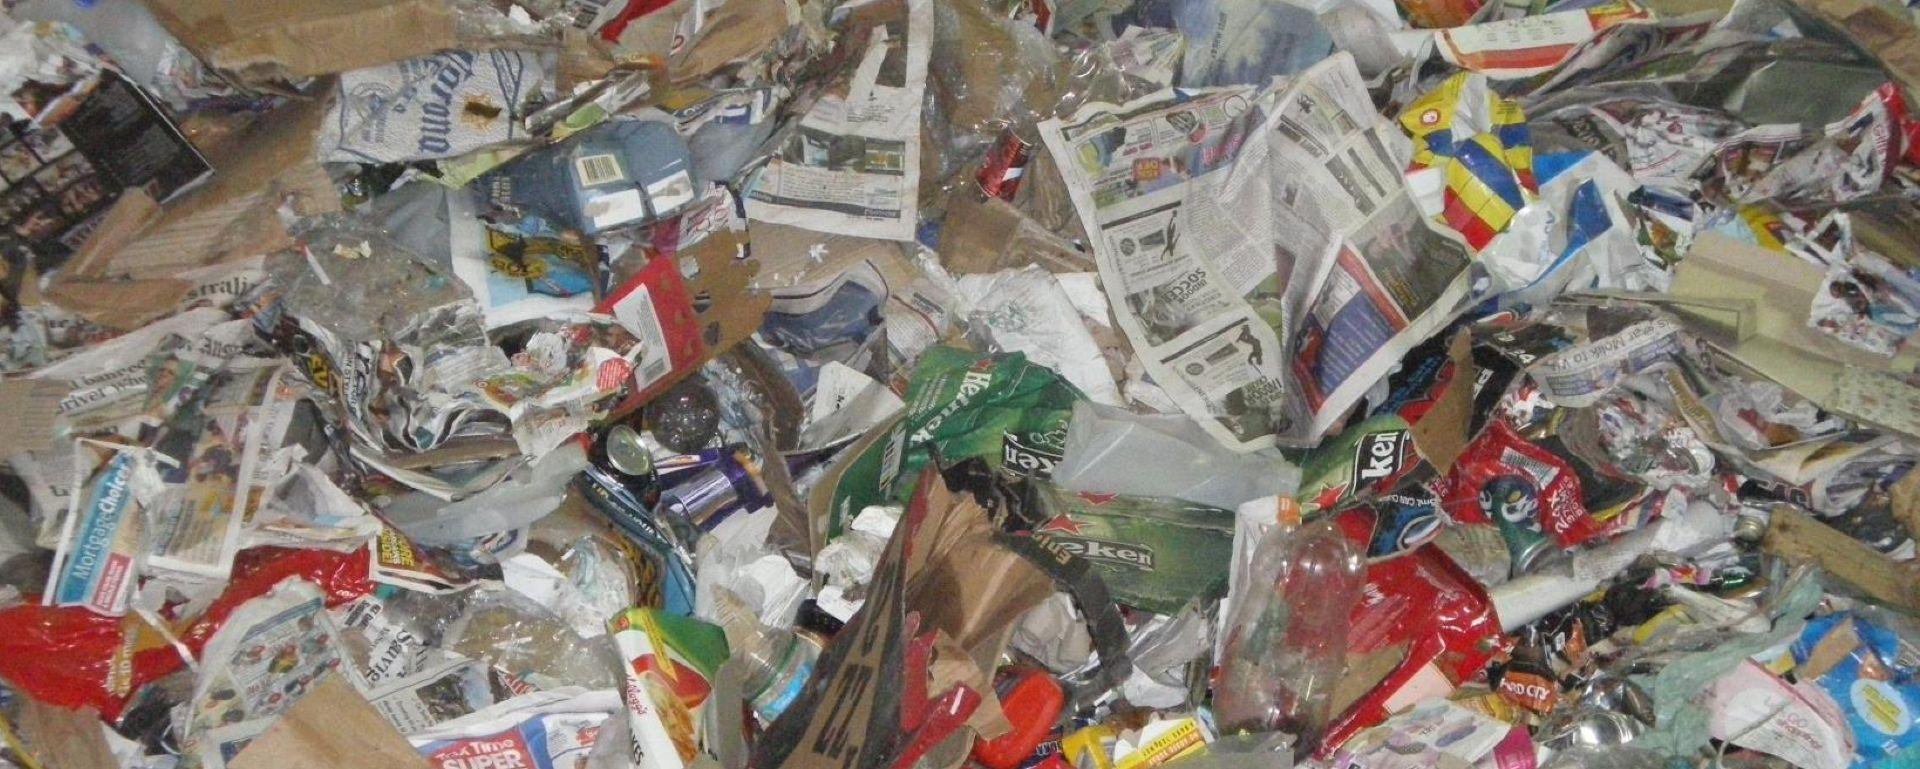 A-Z of waste - How to dispose of common household waste